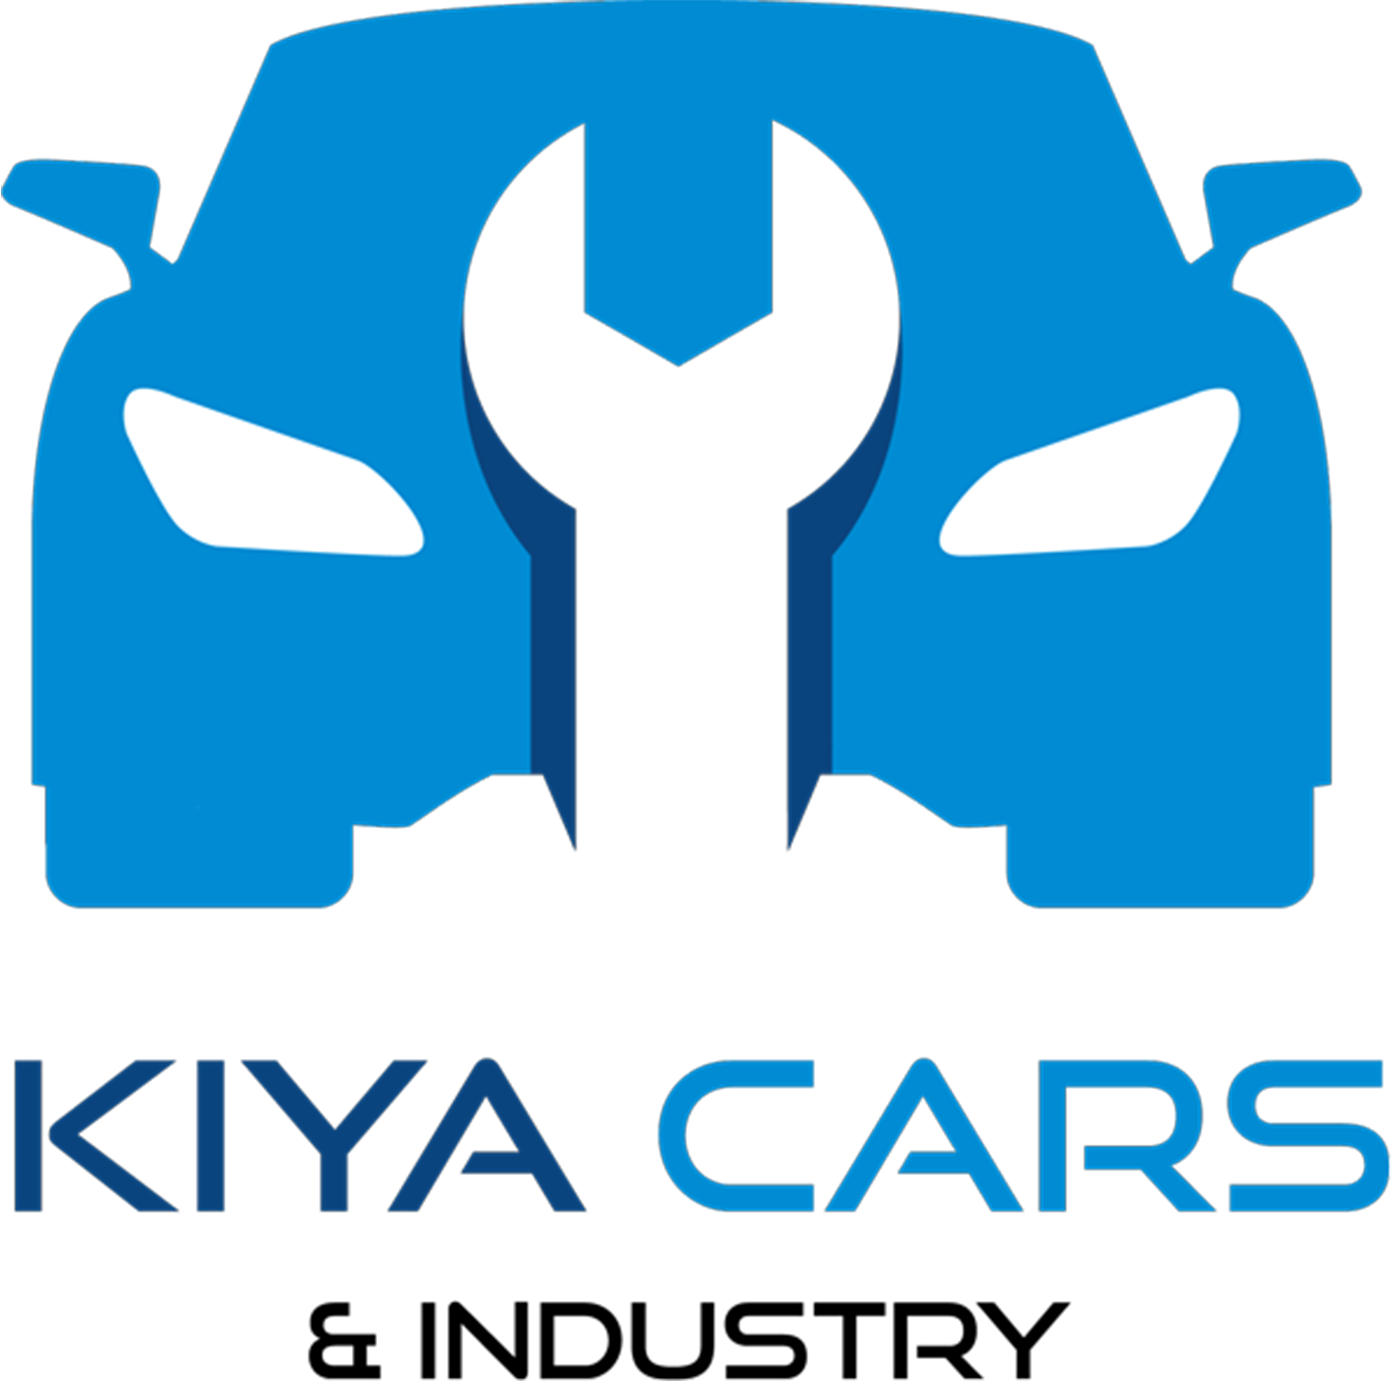 Kiya Cars & Industry